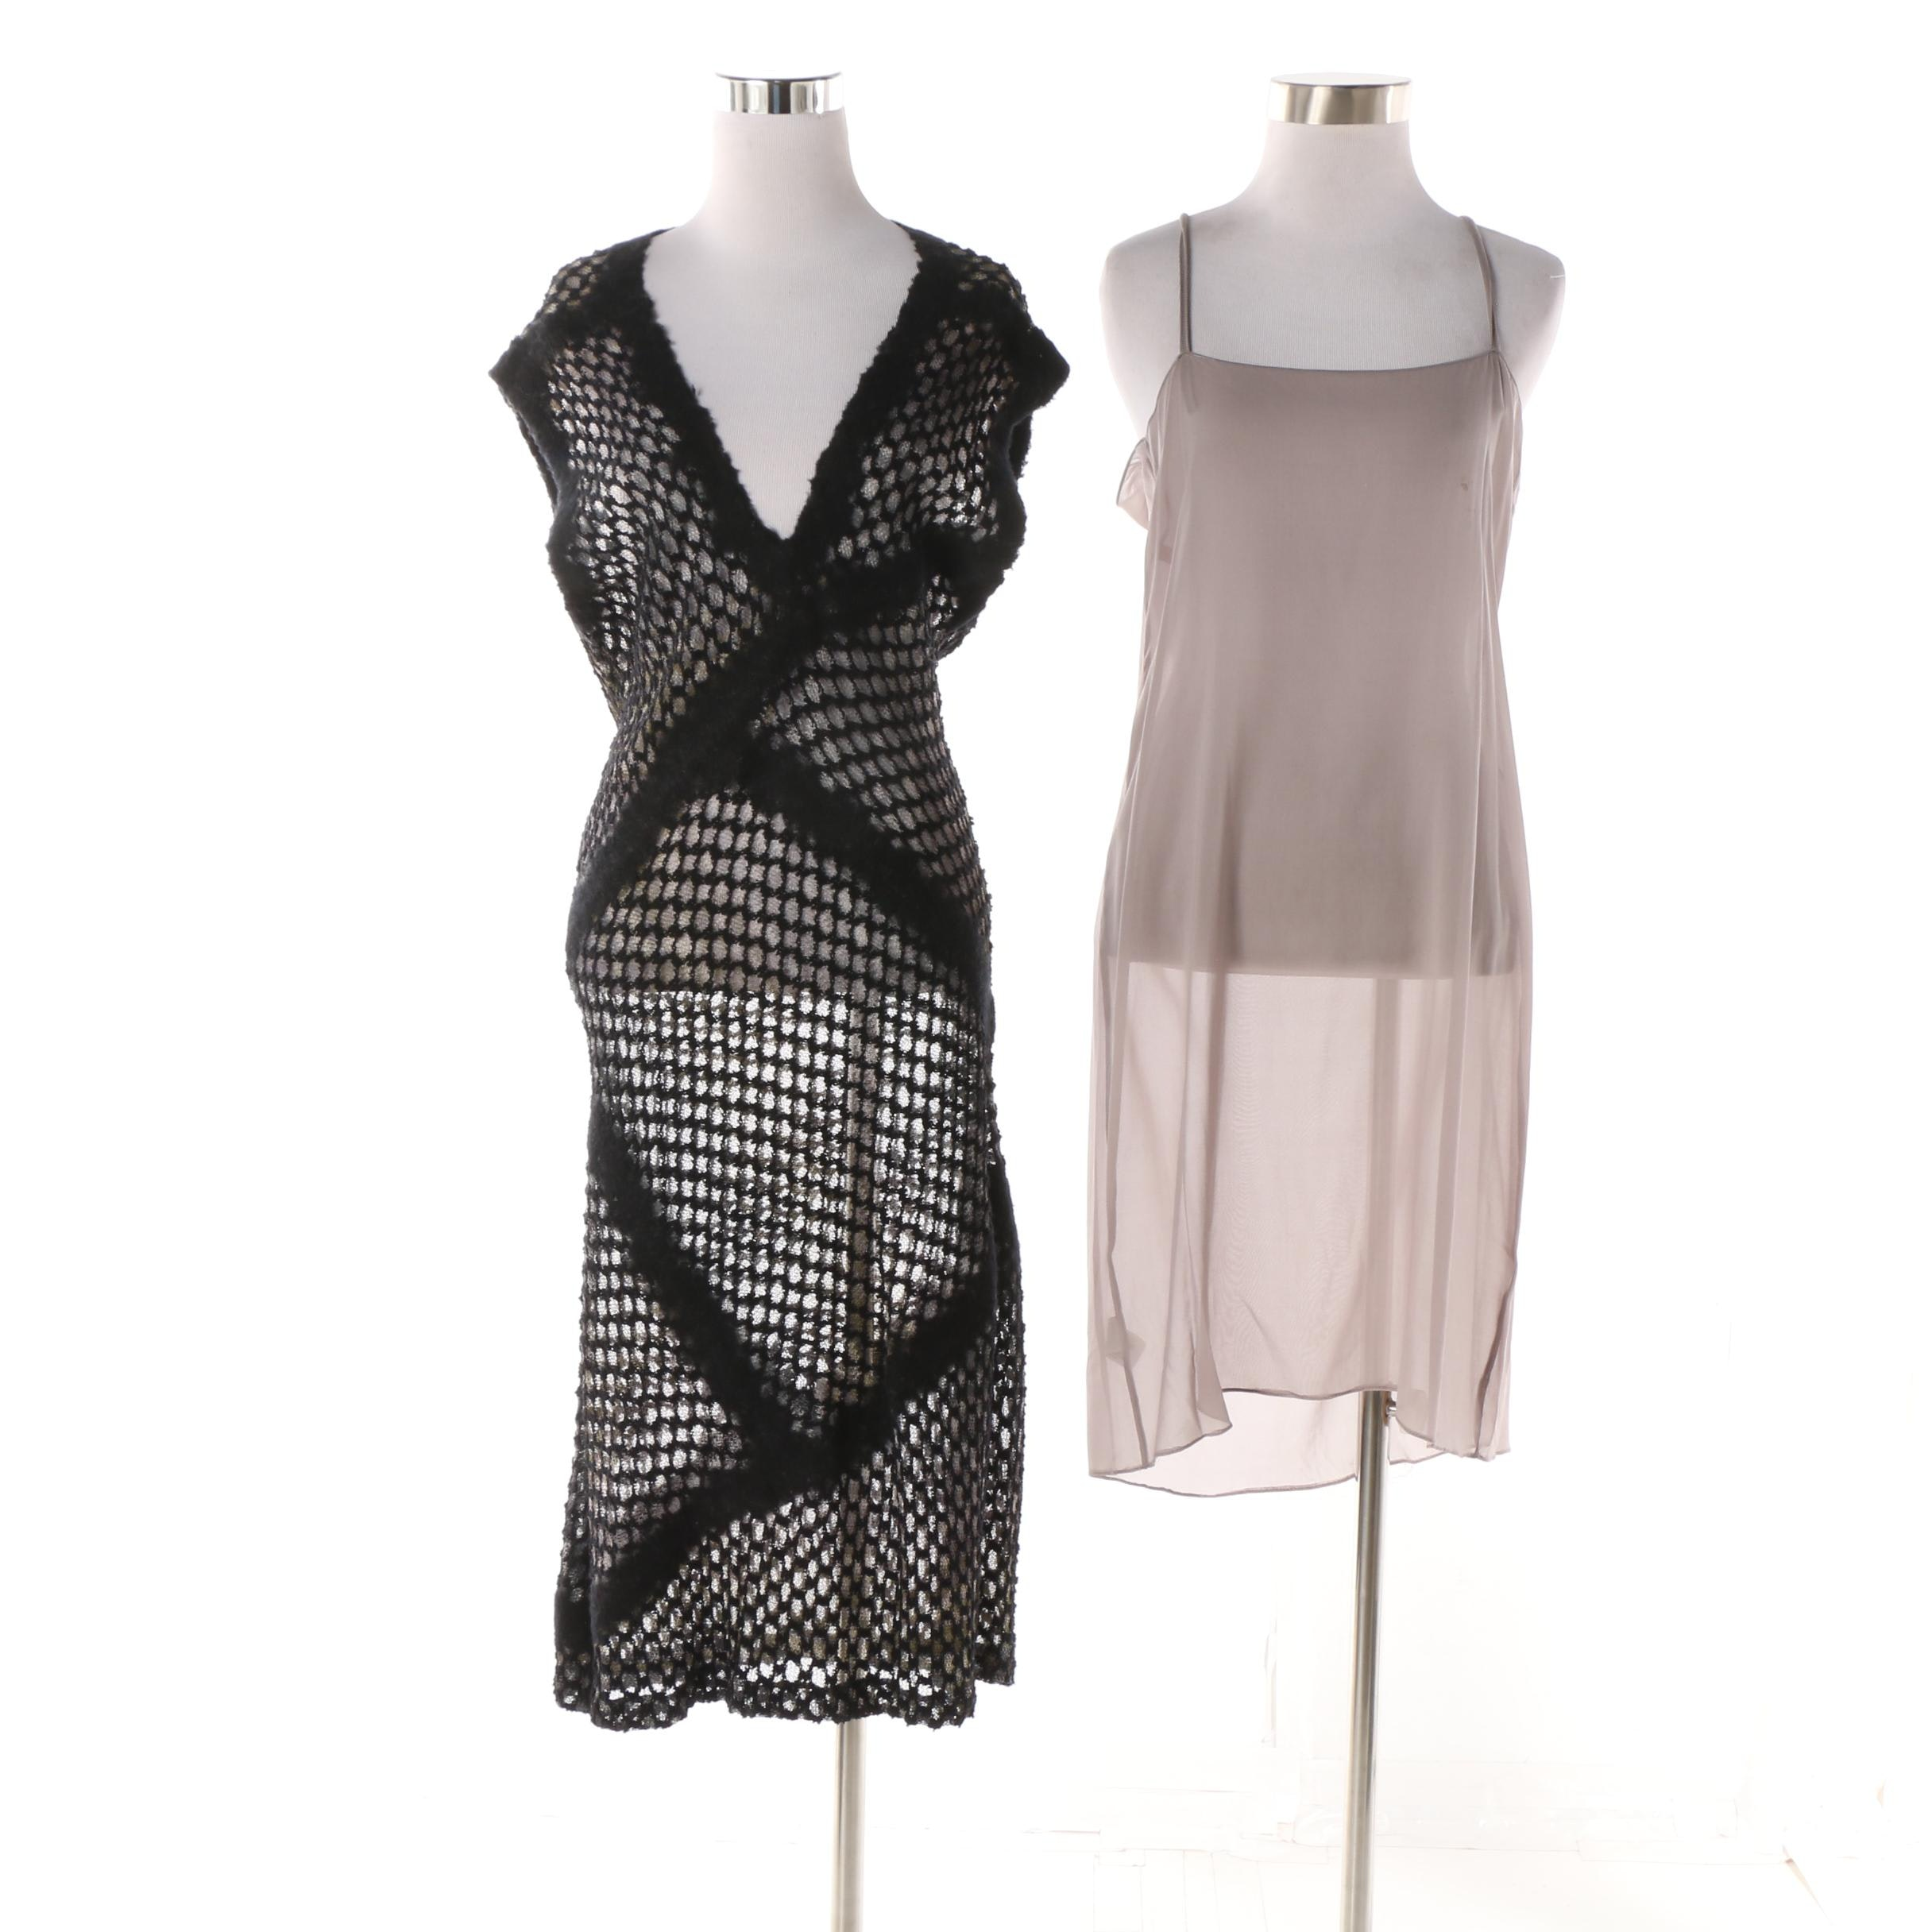 Missoni Black Open Knit V-Cut Dress with Gray Silk Slip, Made in Italy